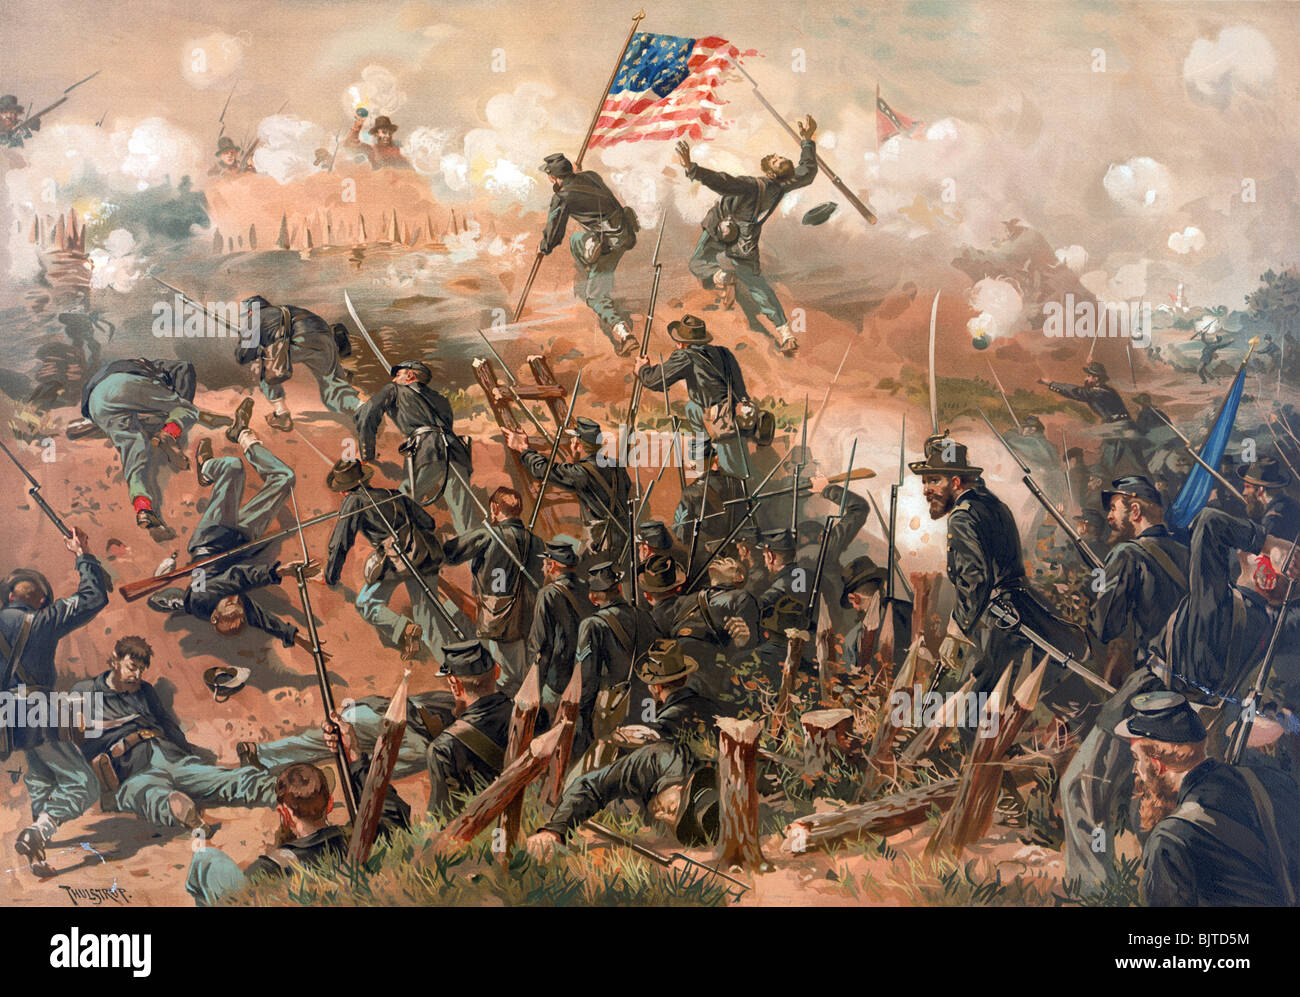 Colour print c1888 depicting the Siege of Vicksburg (May 25 - July 4 1863) during the US Civil War. - Stock Image